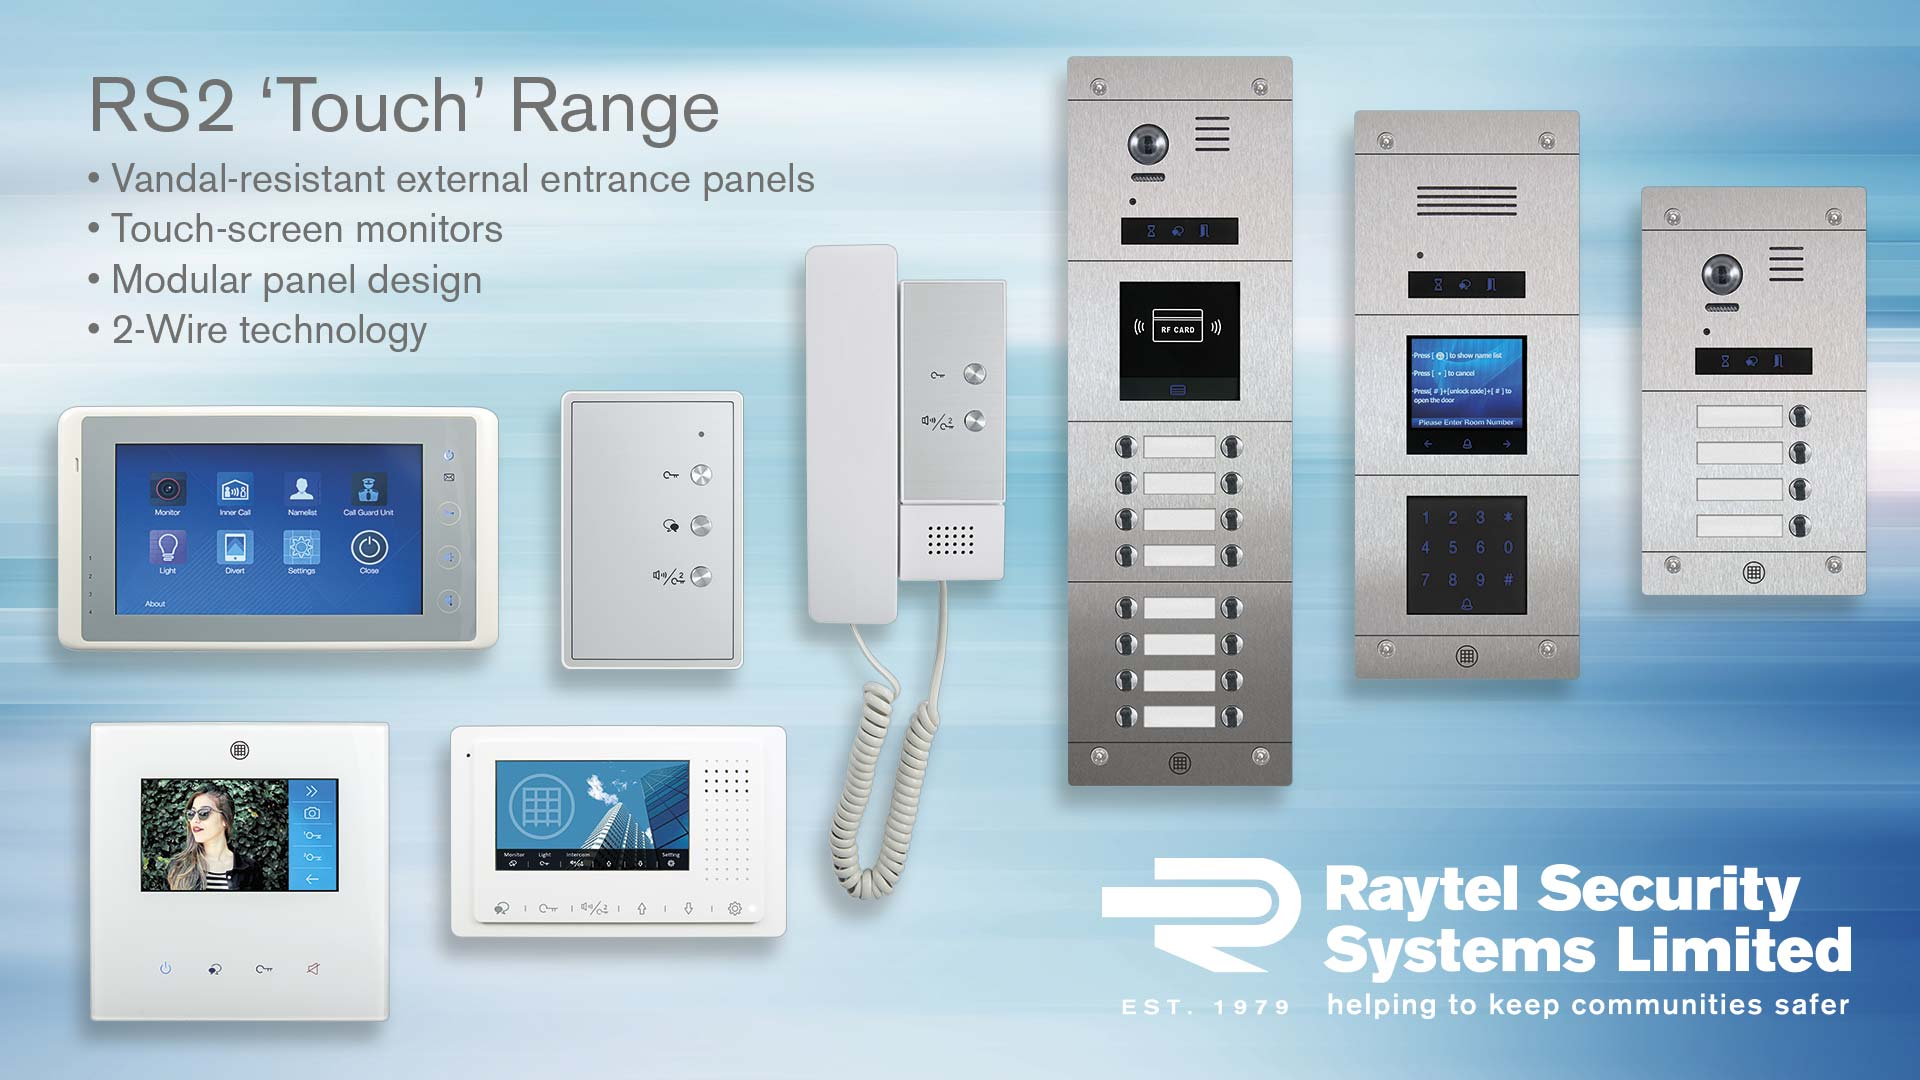 Touch series modular door entrance panels and touch-screen video monitor apartment units